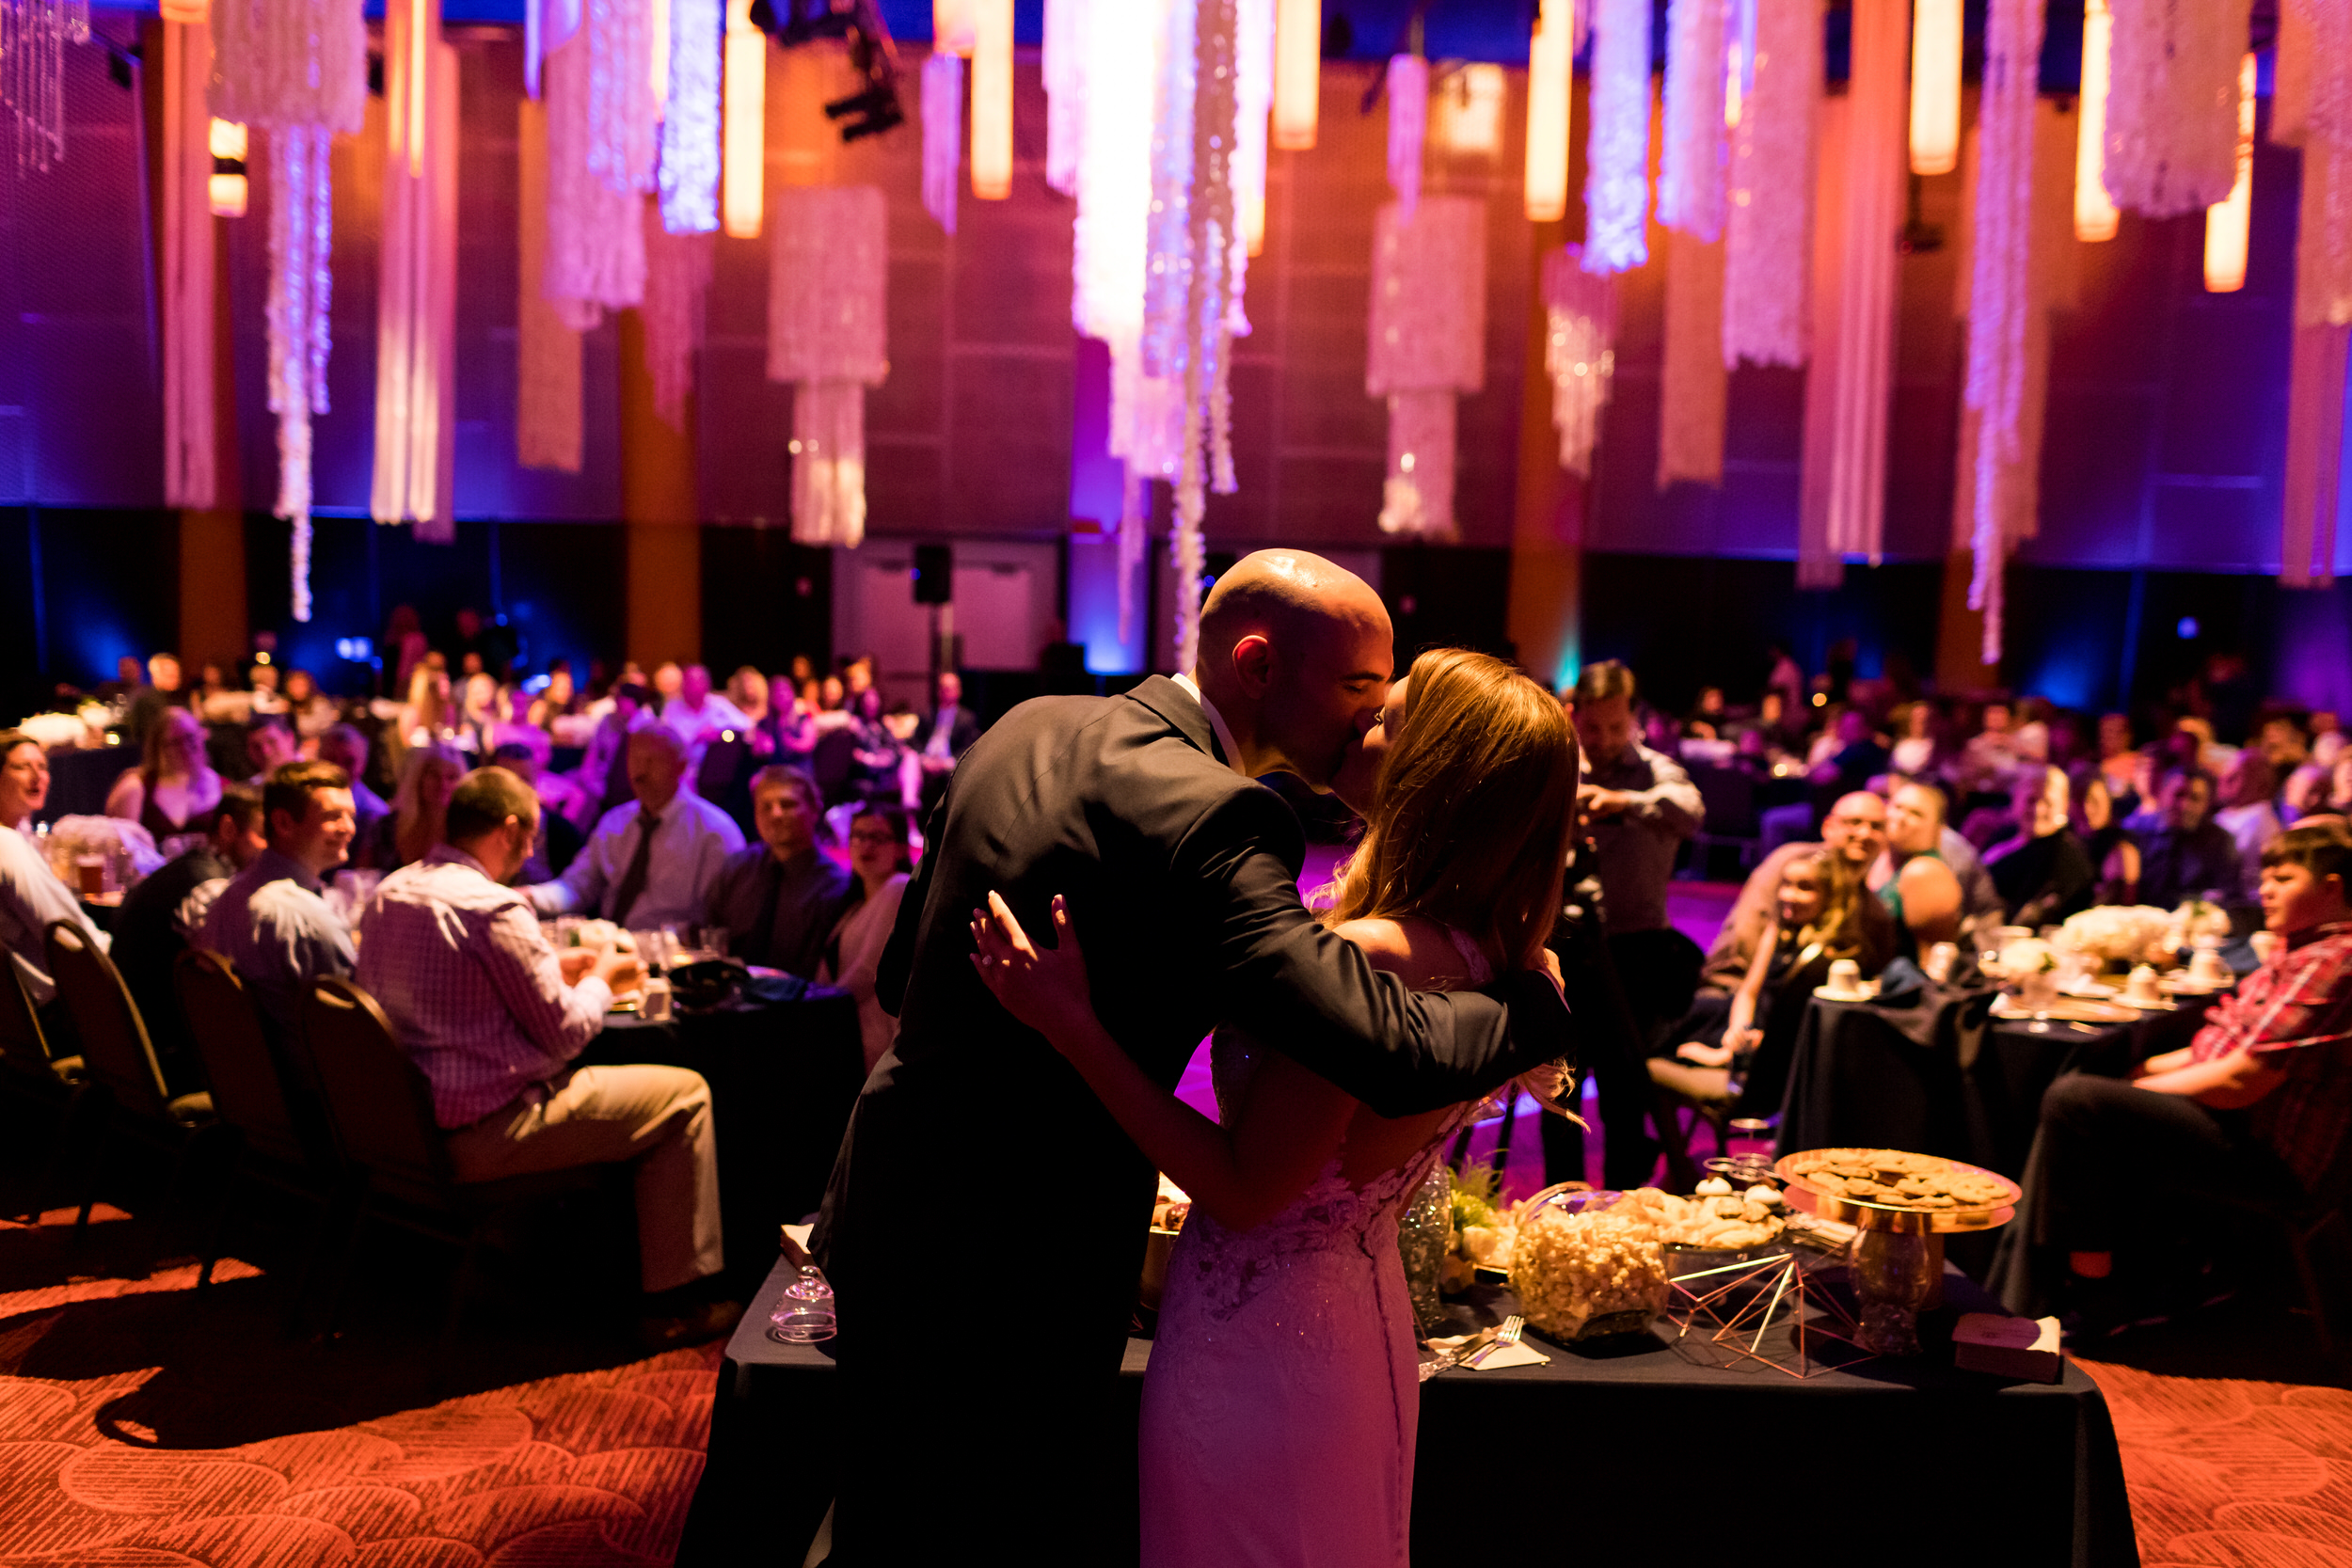 salem_convention_center_wedding_stark_photography_026